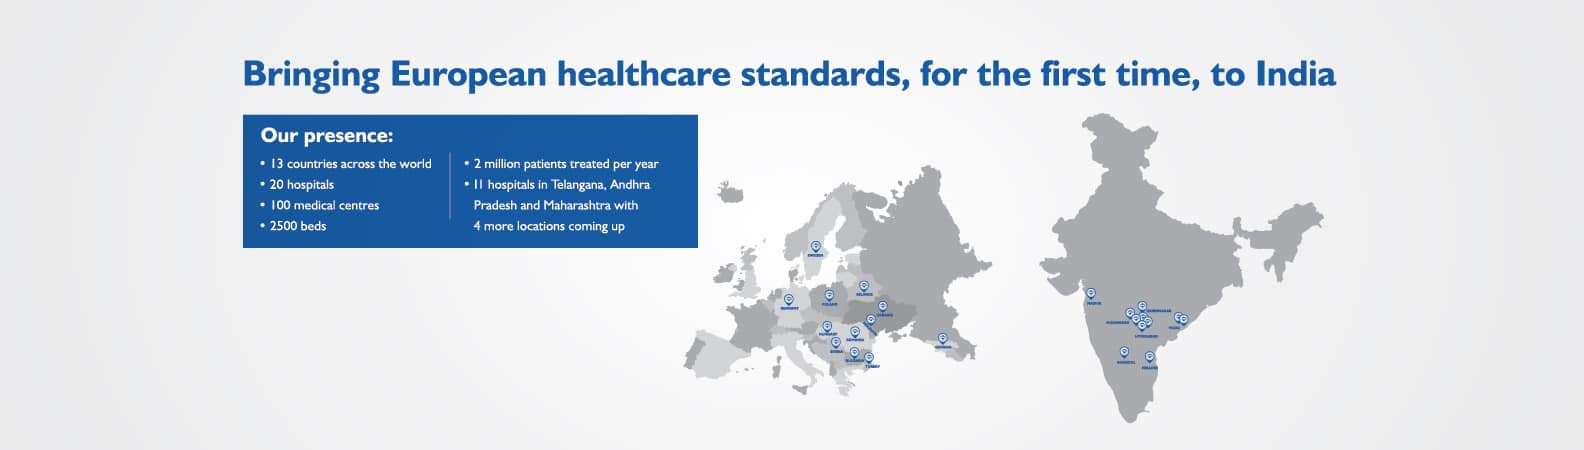 Bringing European Healthcare Standards for the first time to India